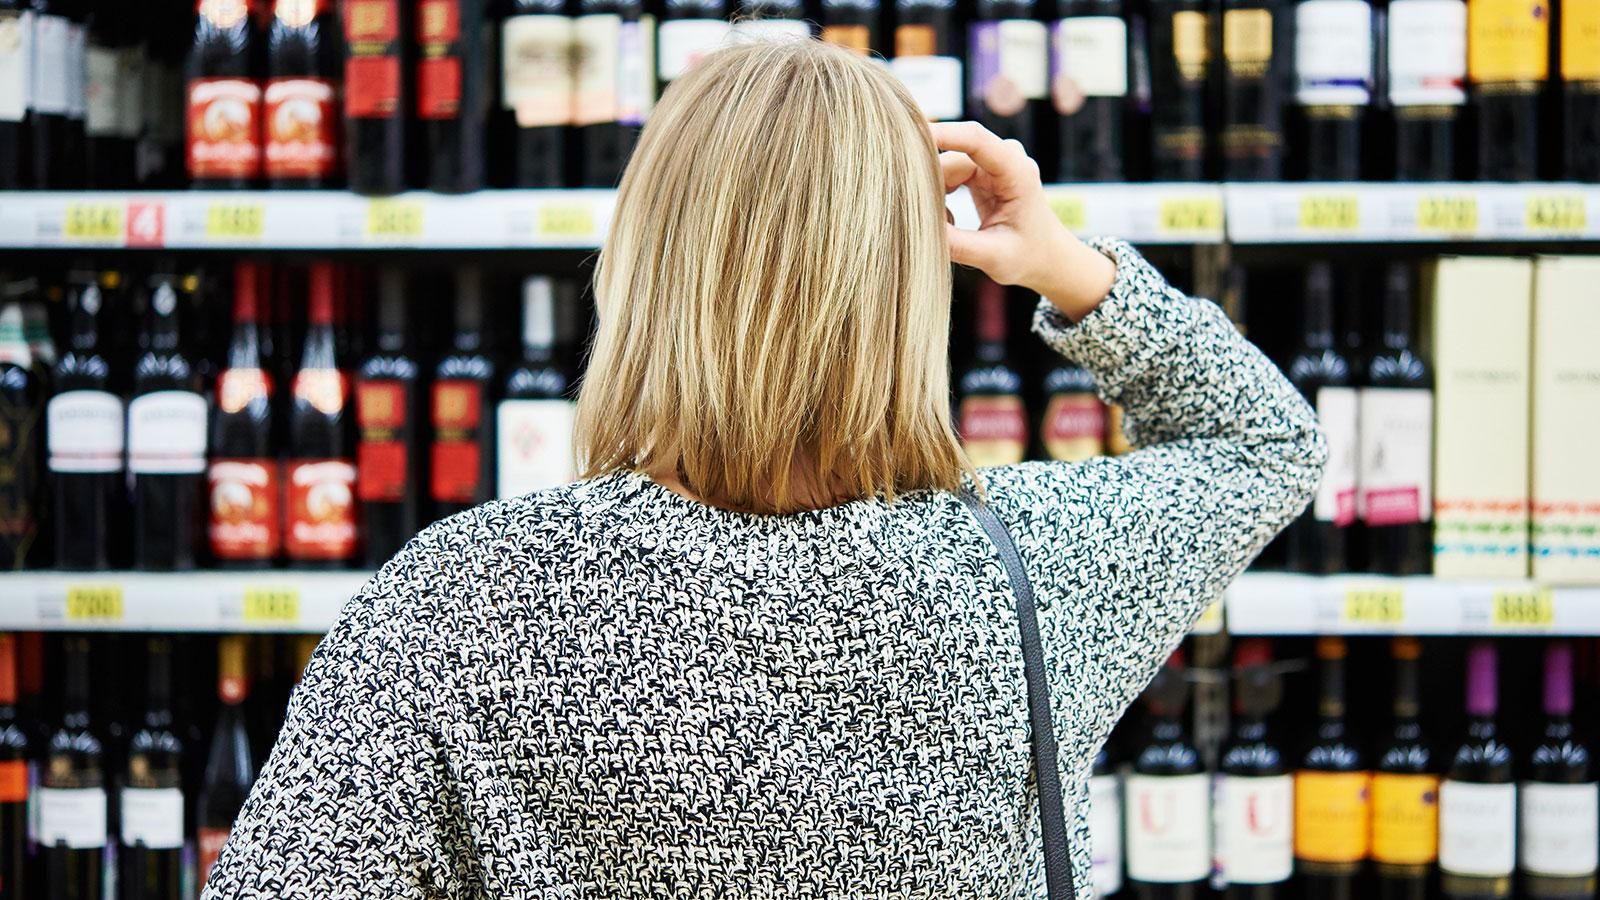 Shopping for wine among a sea of labels and prices can be overwhelming.